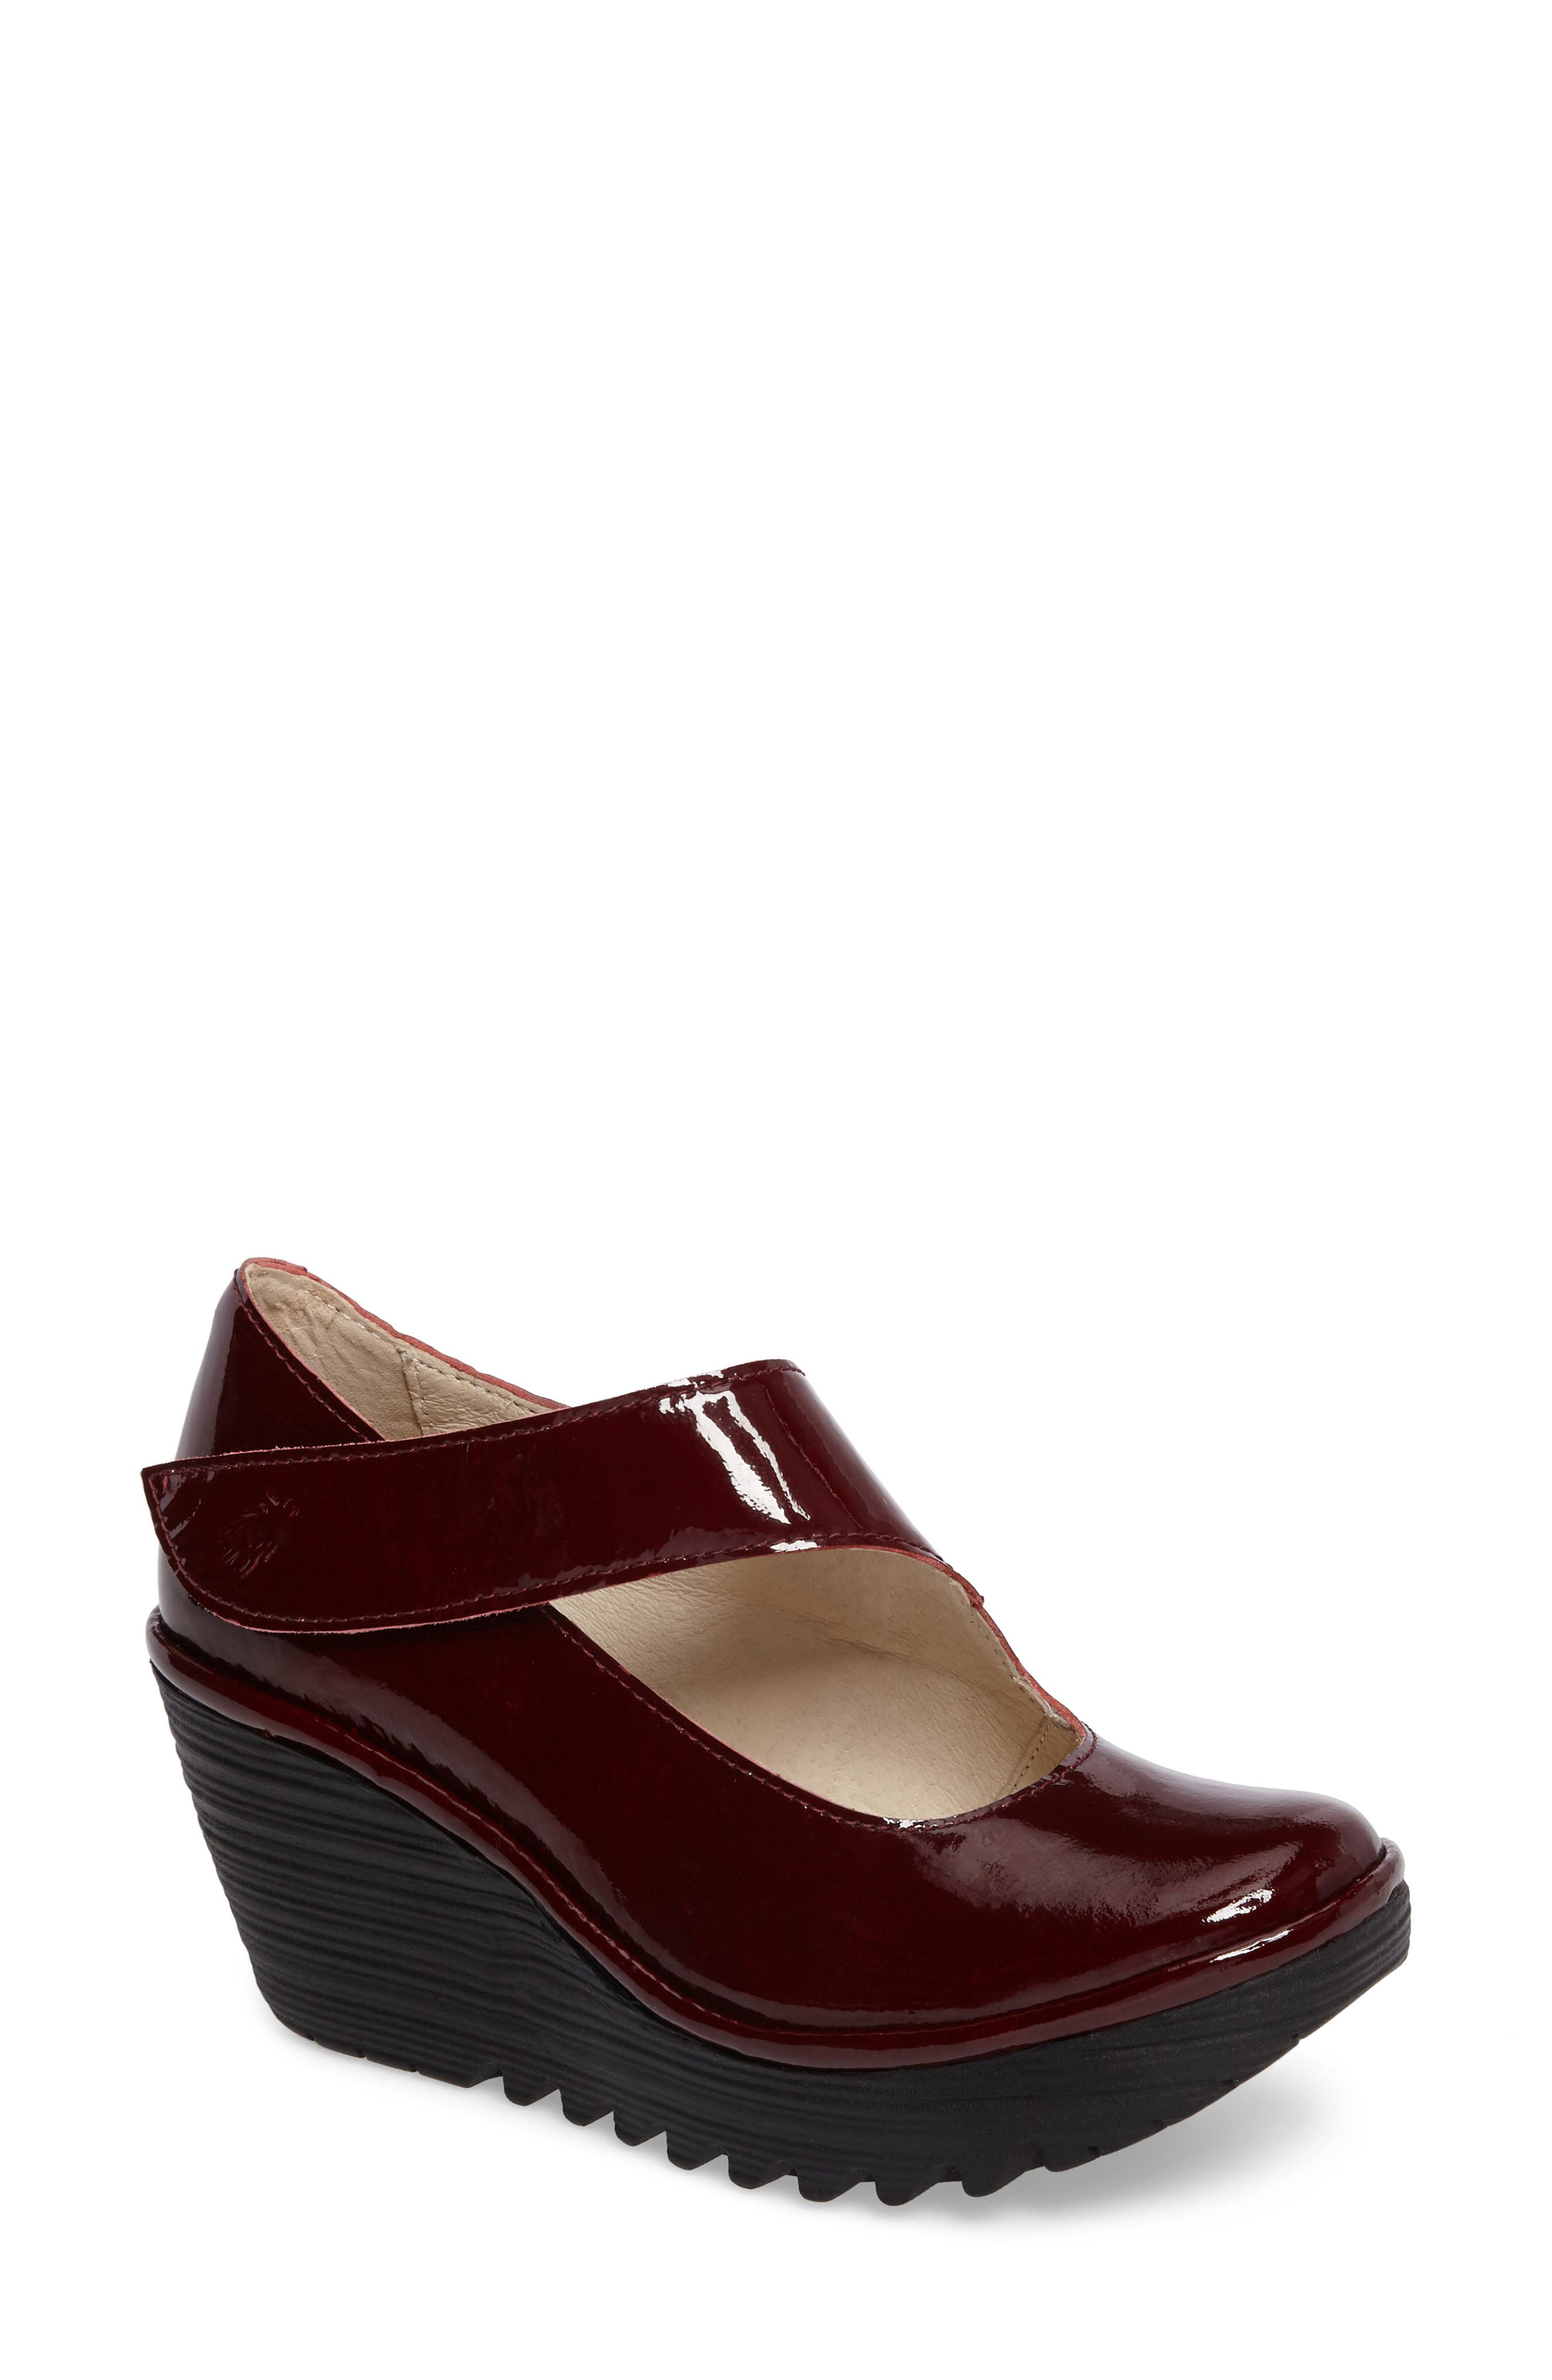 'Yasi' Wedge Pump,                             Main thumbnail 1, color,                             Cordoba Red Leather